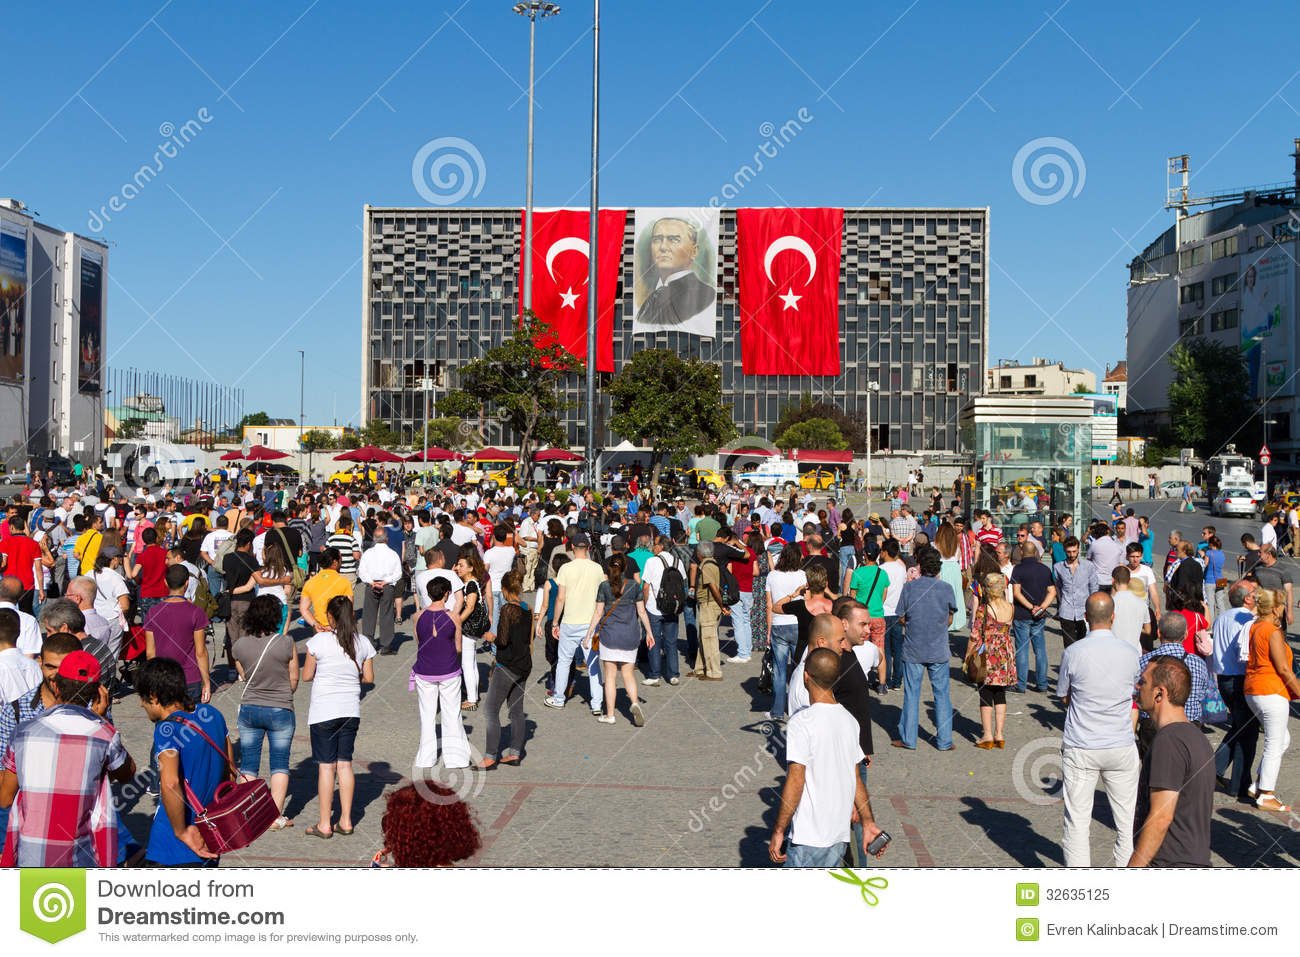 the gezi park protest This generation has shown itself and to some extent empowered itself through the gezi park protests the question is whether it can transform itself into some form.